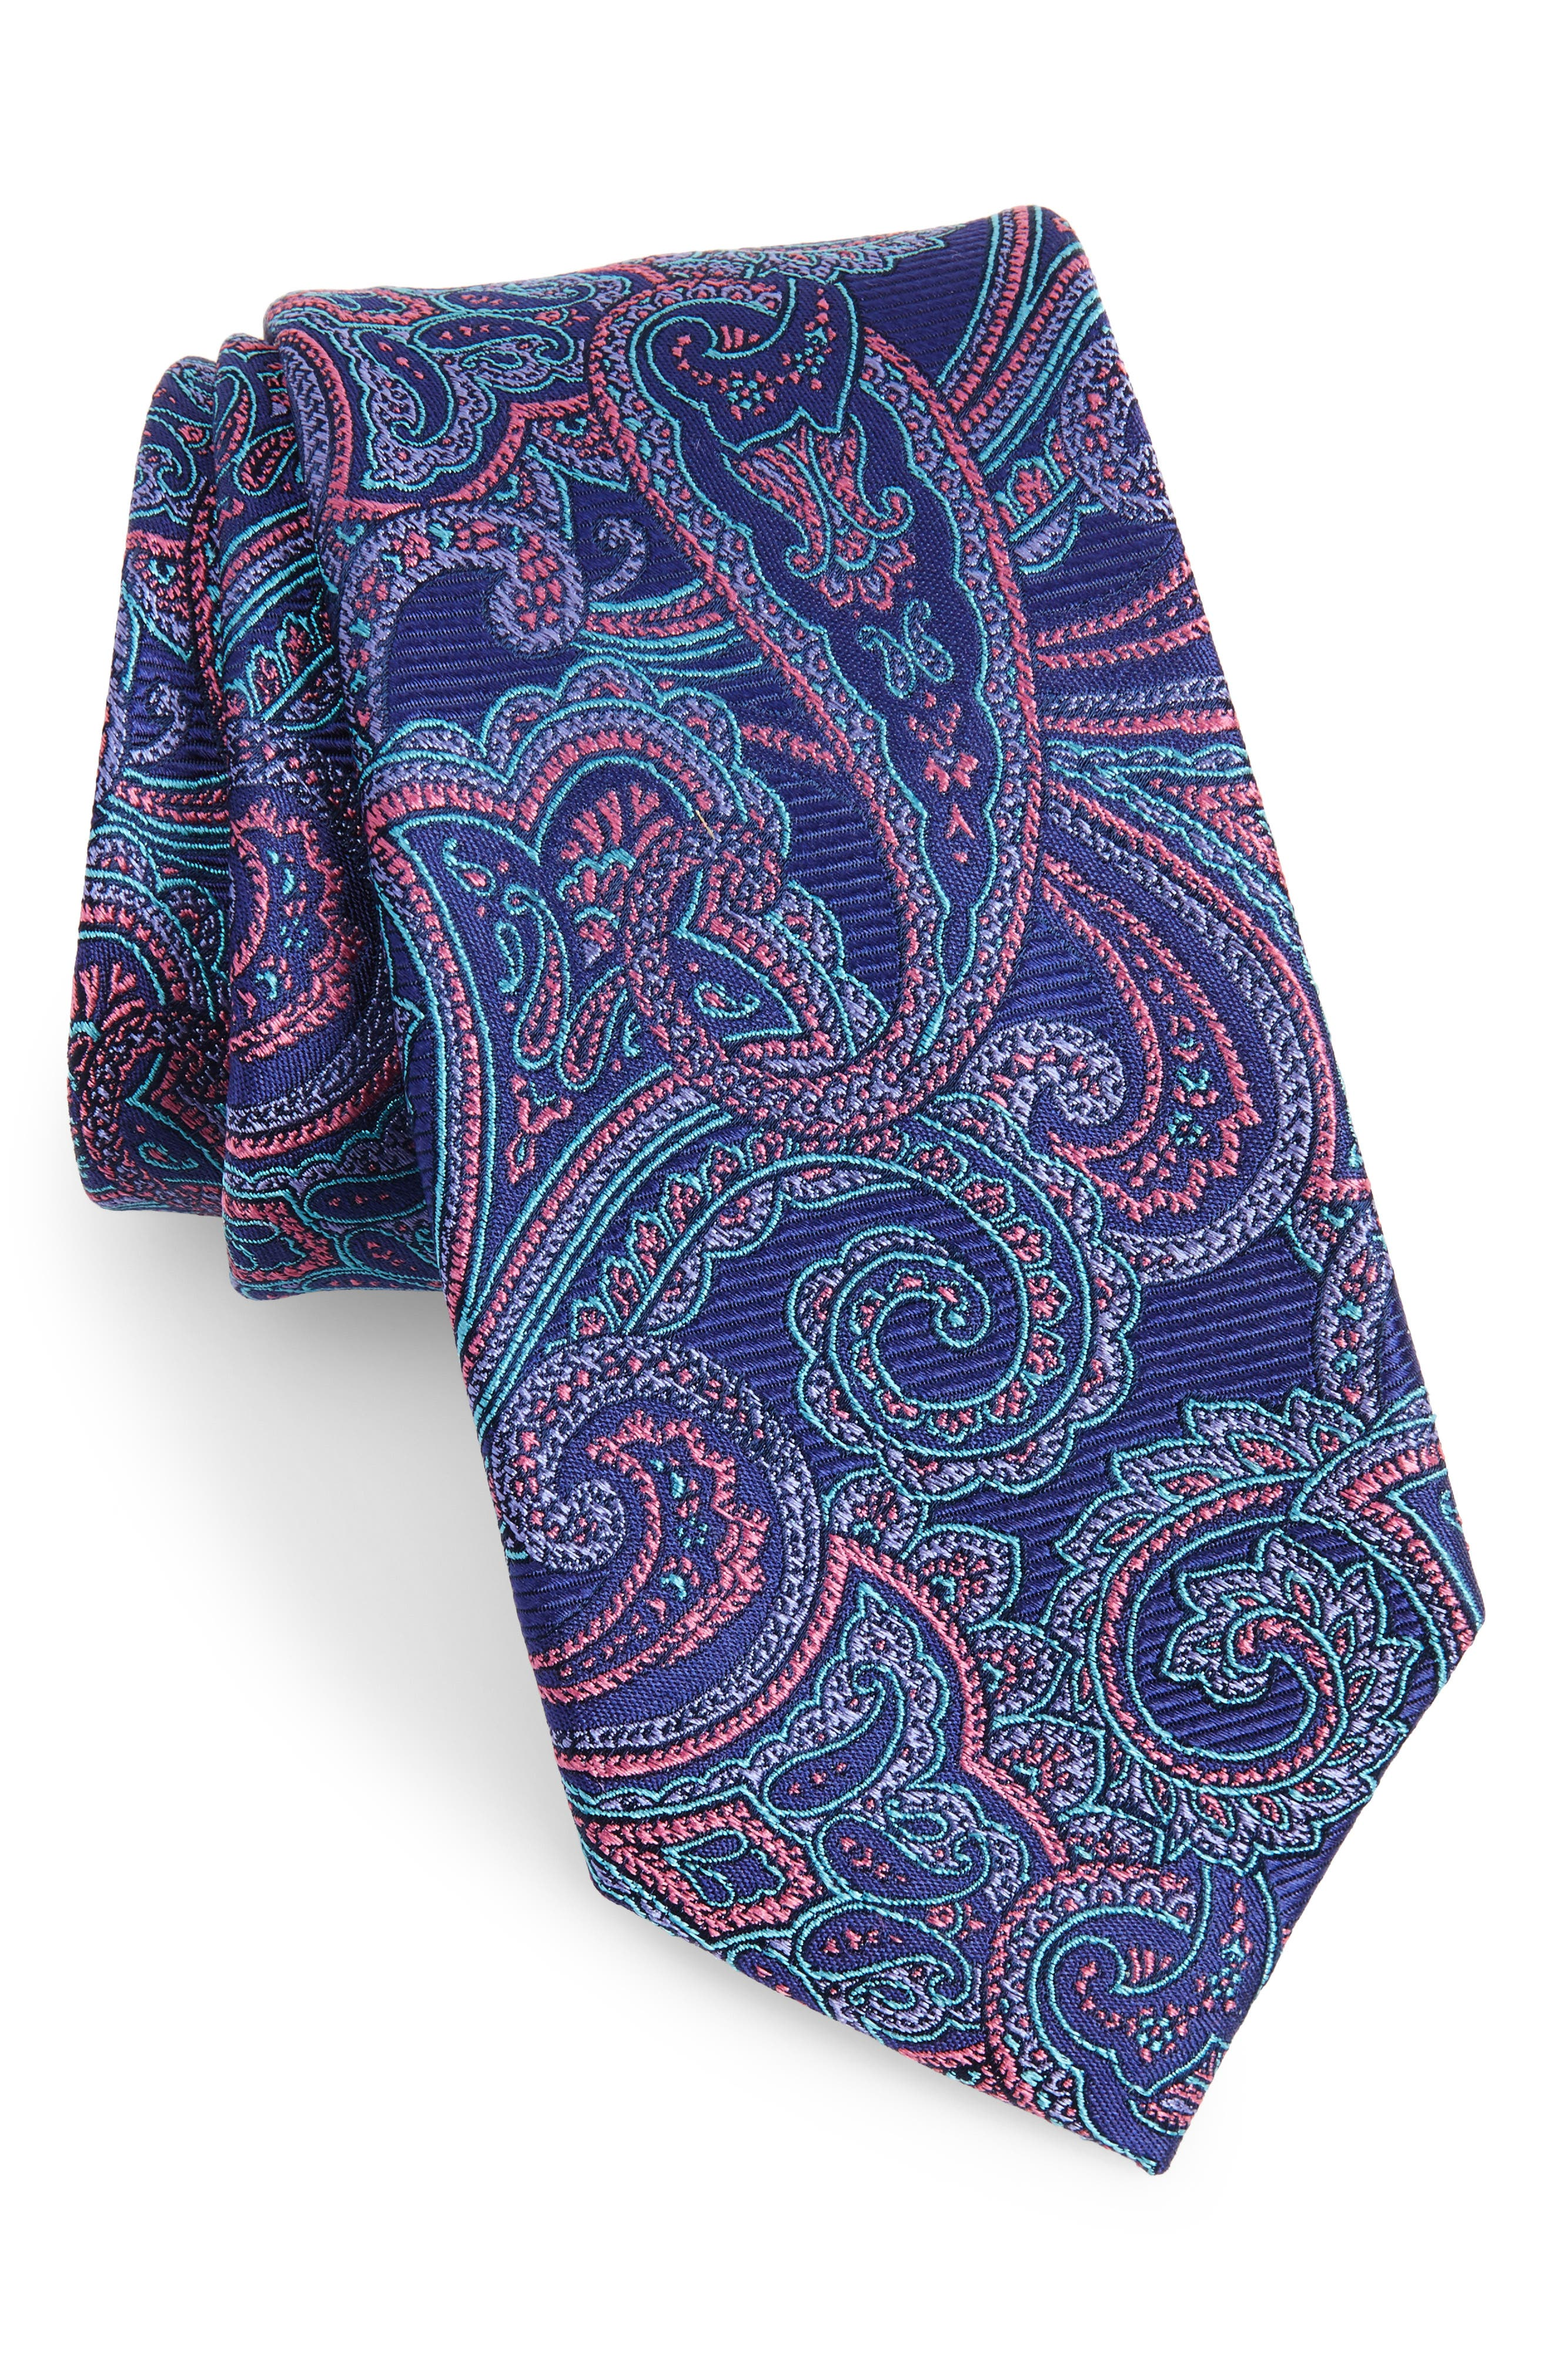 Main Image - Nordstrom Men's Shop Avalon Paisley Silk Tie (X-Long)